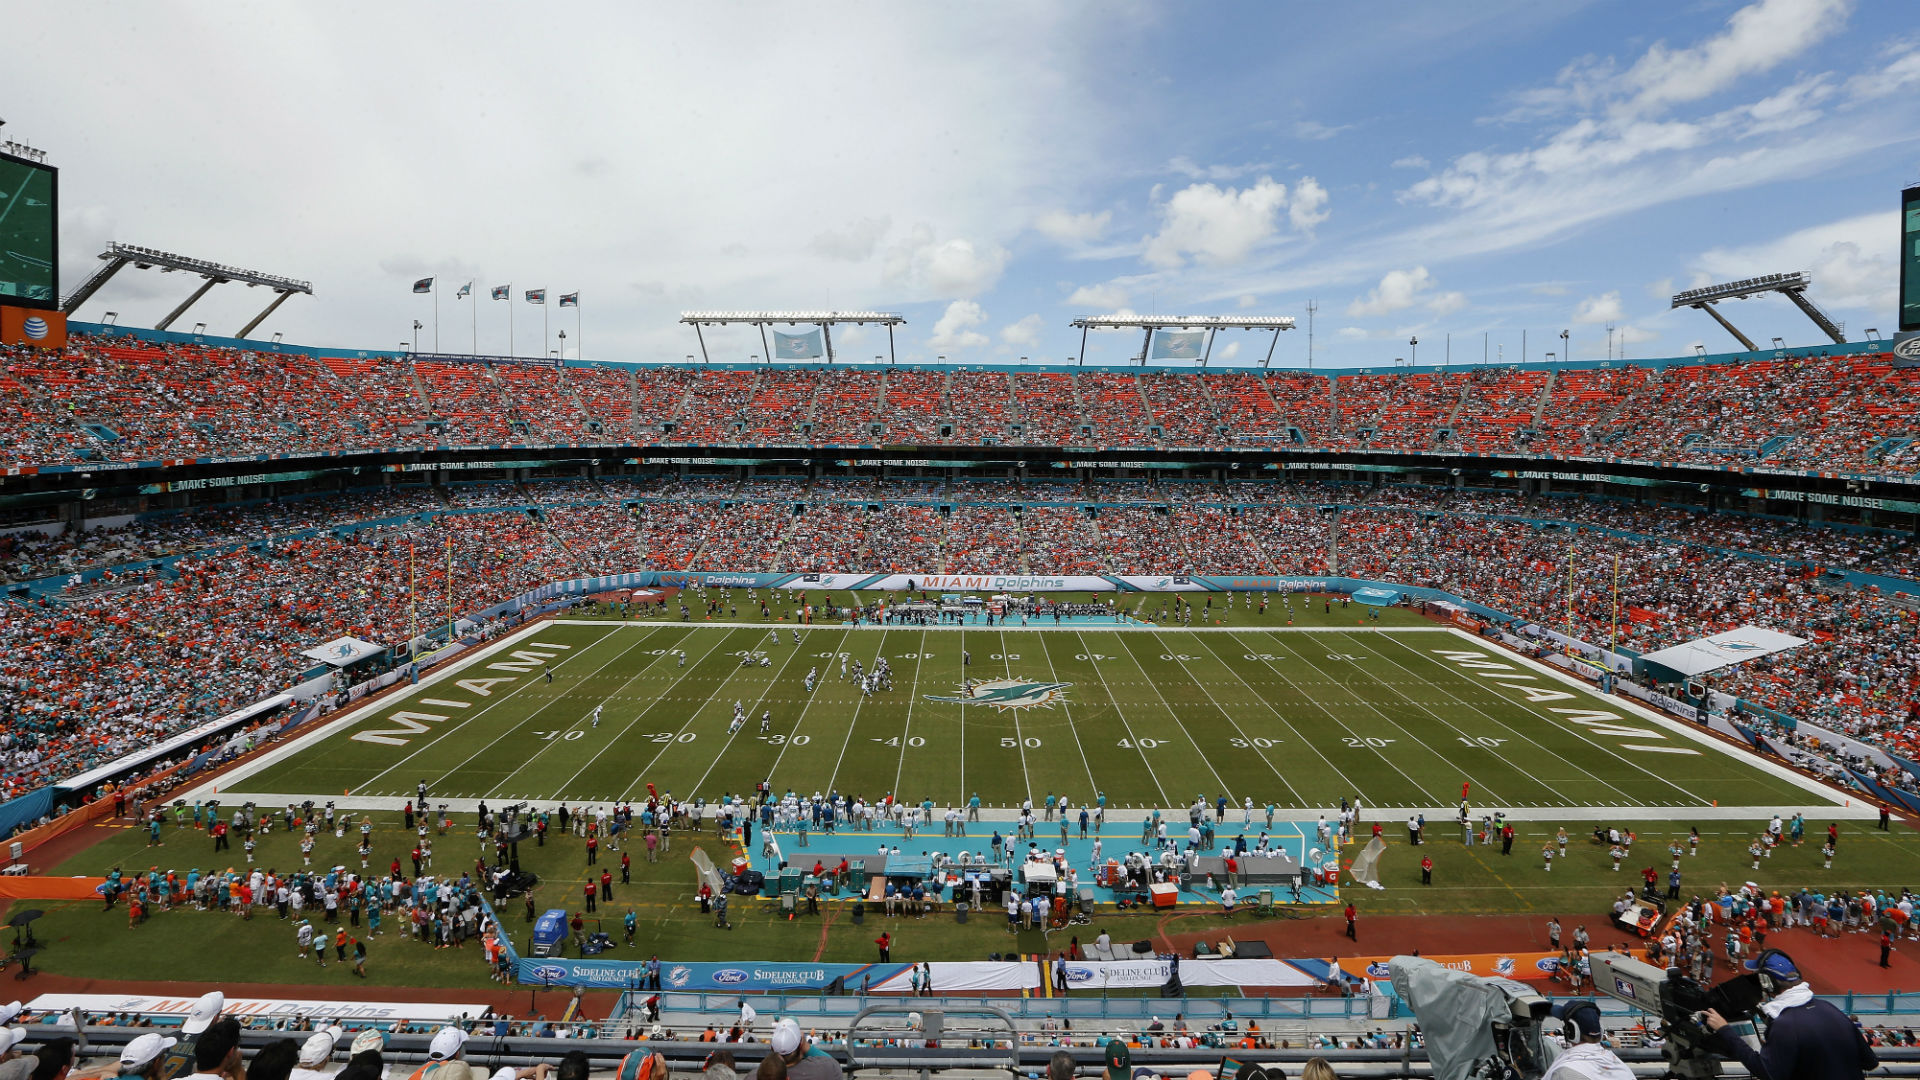 MLS group, Canes to discuss joint-use stadium